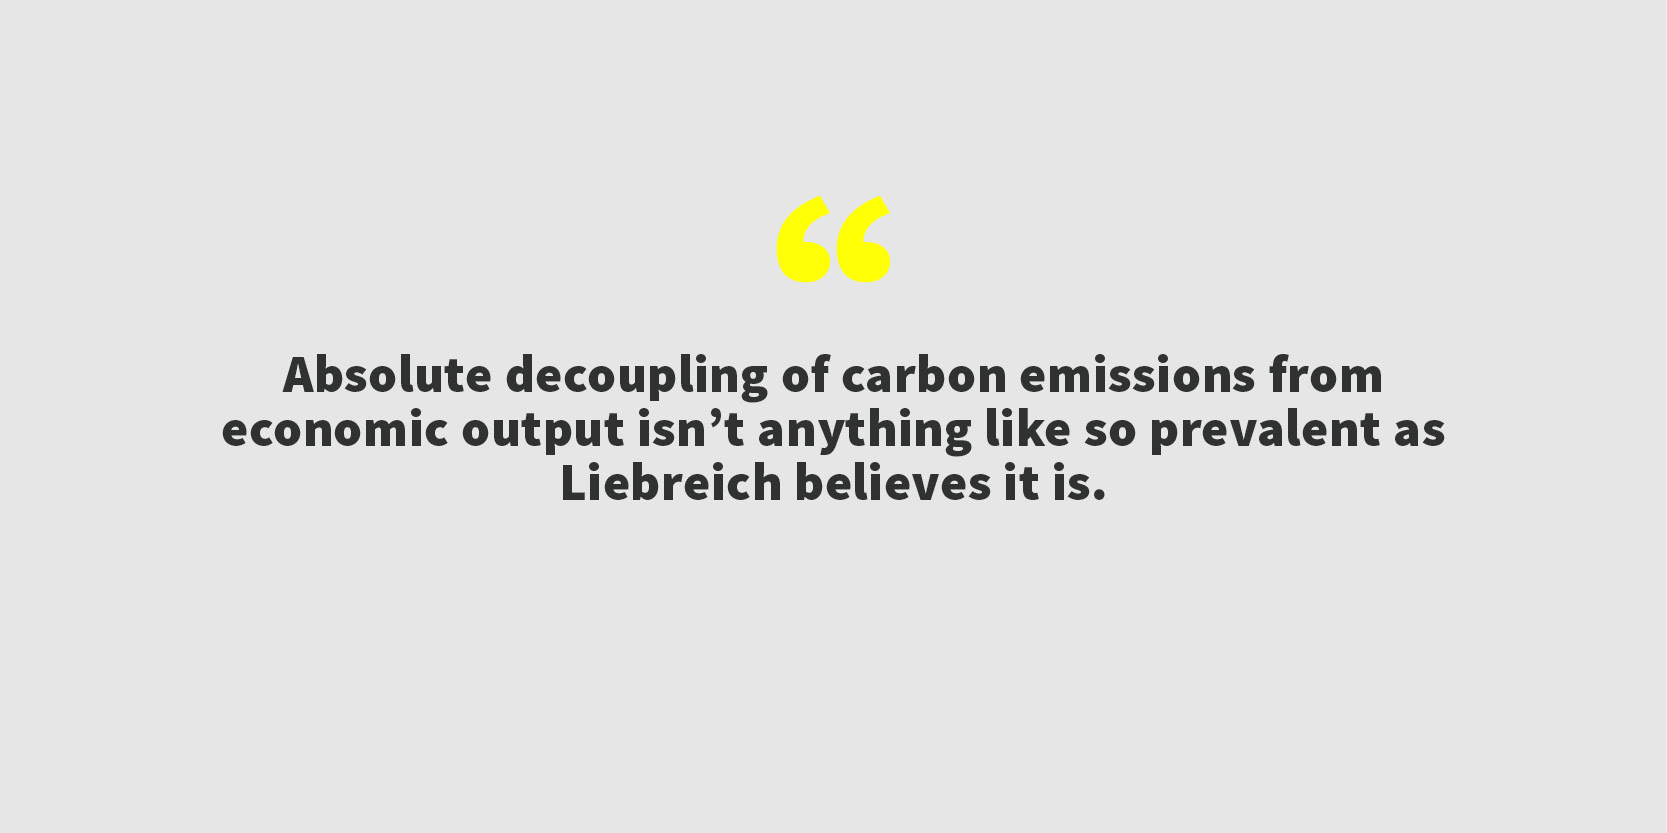 Absolute decoupling of carbon emissions from economic output, for example, isn't anything like so prevalent as Liebreich believes it is.